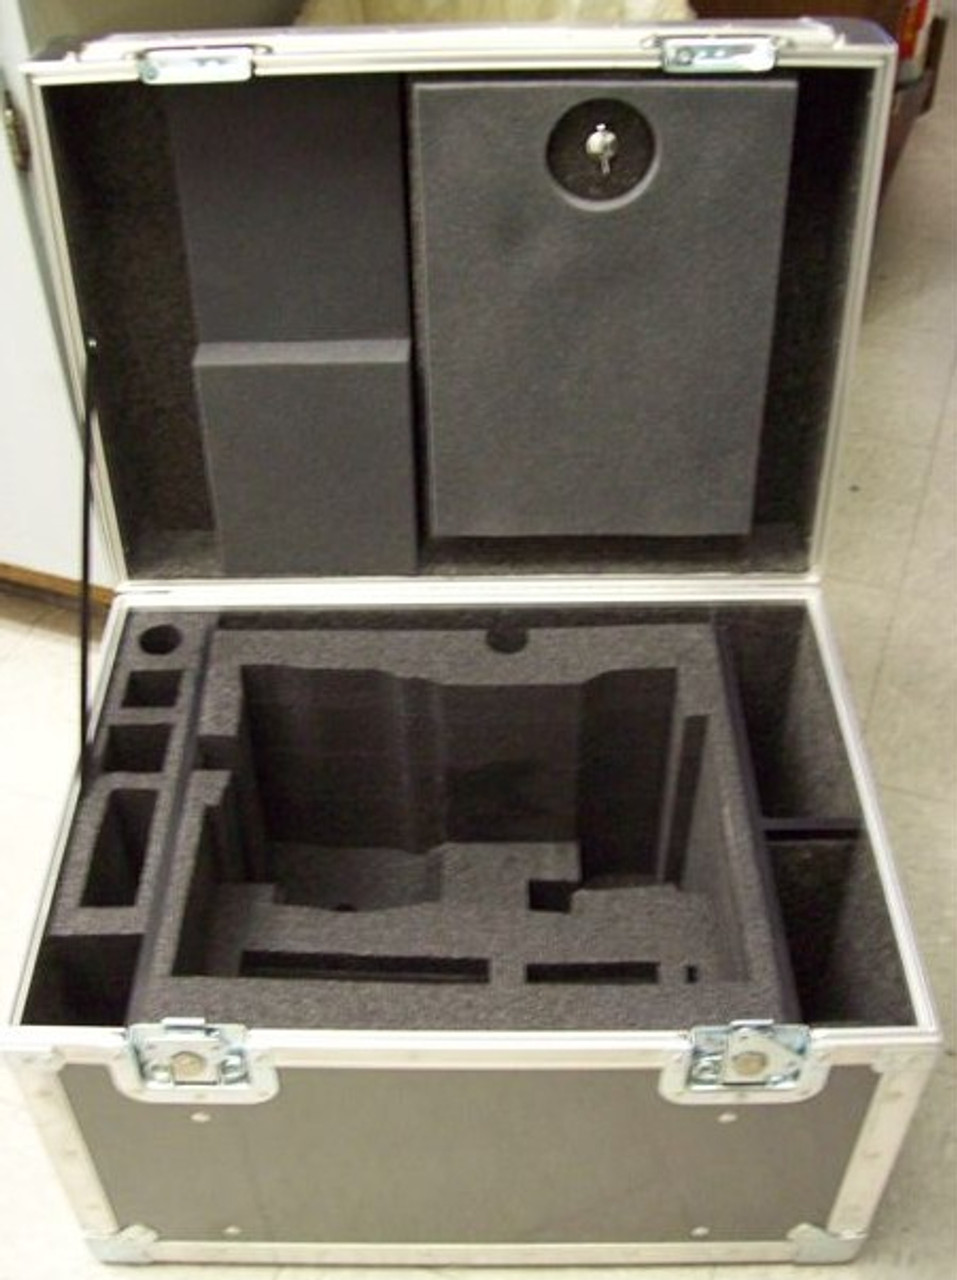 Alexa Camera ATA Shipping Case - Interior View